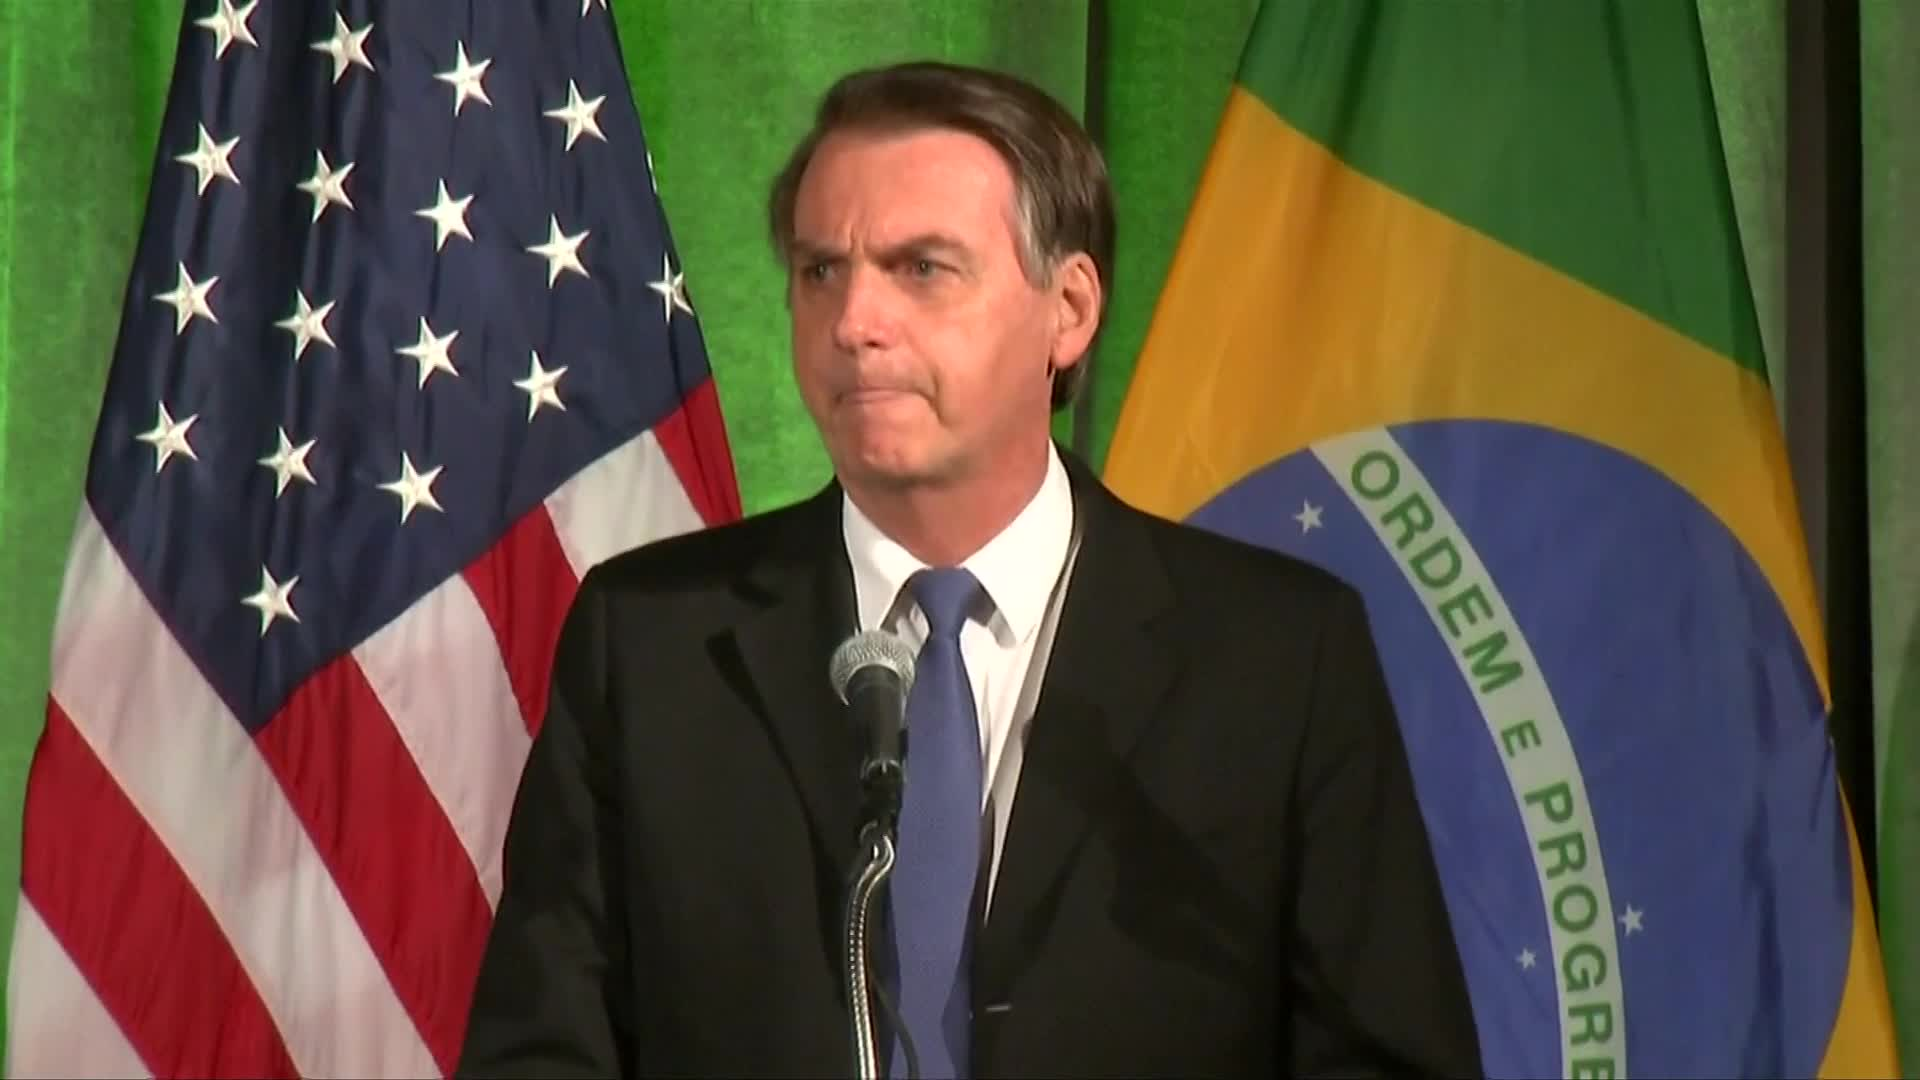 National News - Jair Bolsonaro Talks Fake News Ahead Of White House Meeting